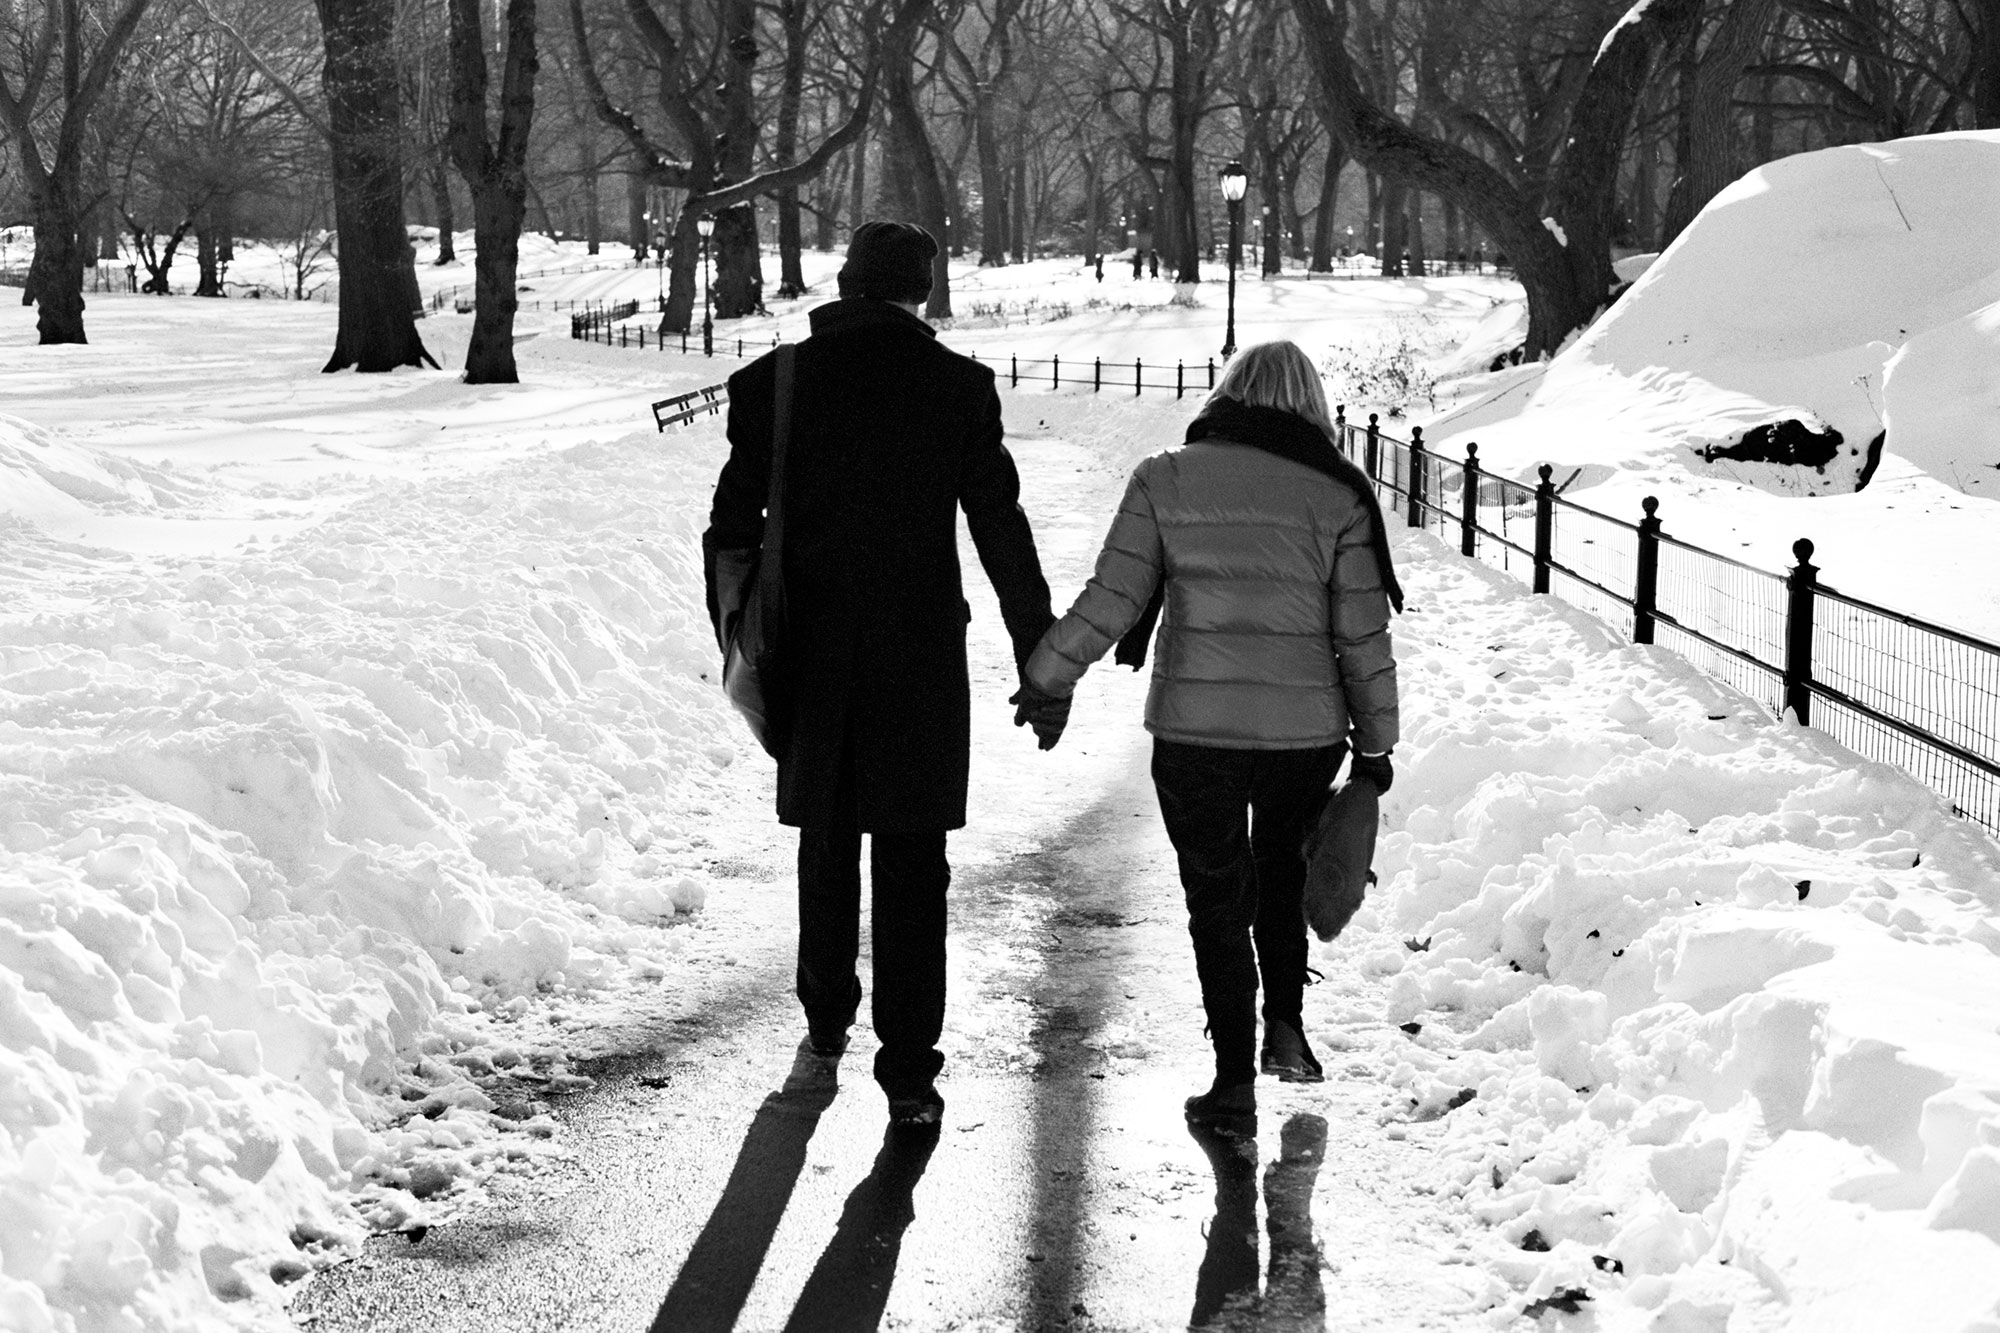 Xmas_Snow_2010_HoldingHands-Edit